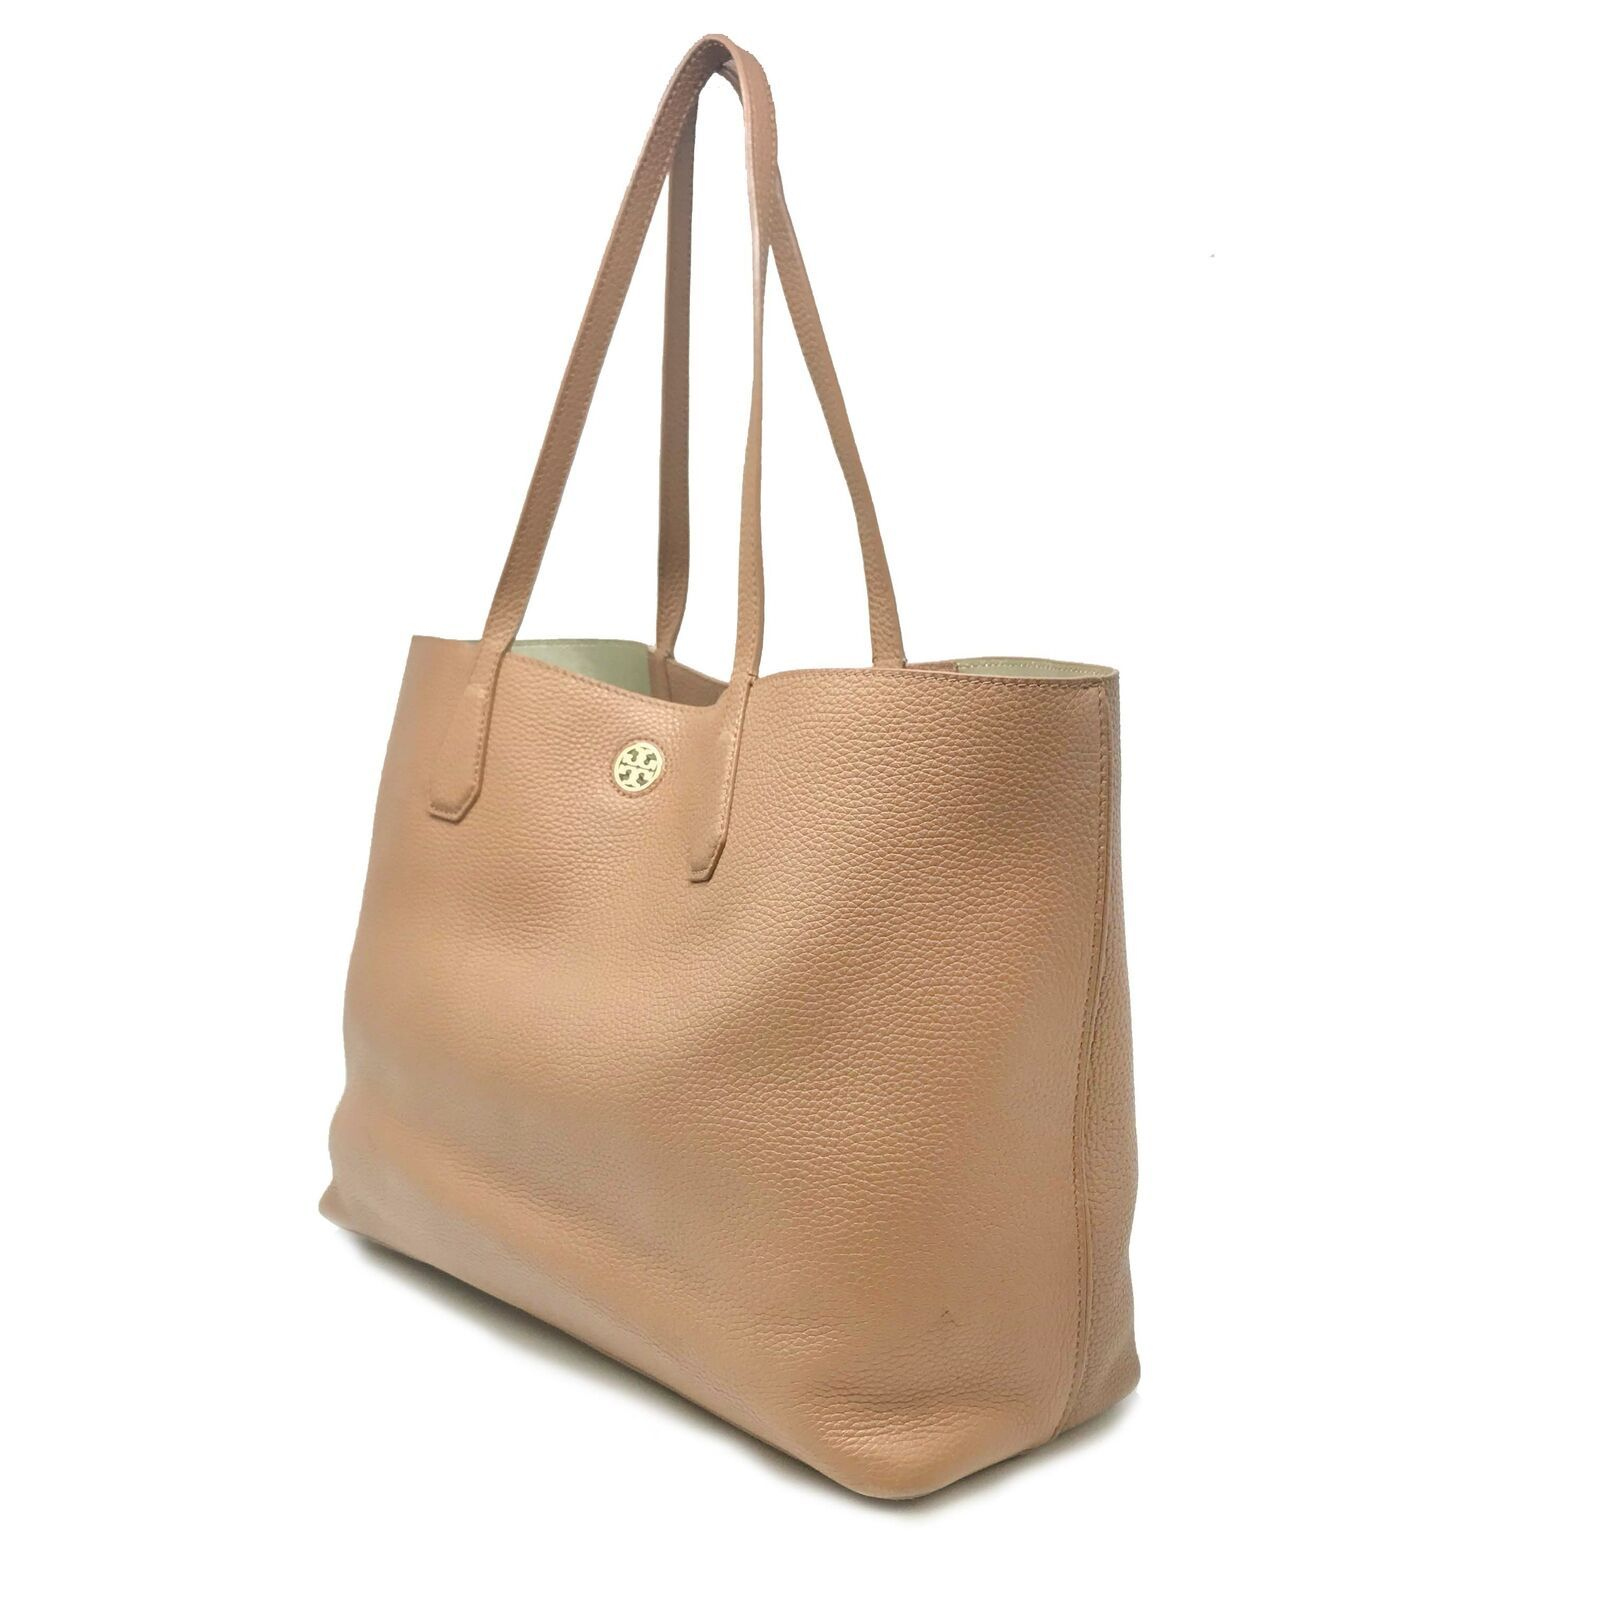 Tory Burch Bark/Light Gold Pebbled Leather Perry Tote Women's Bag image 2